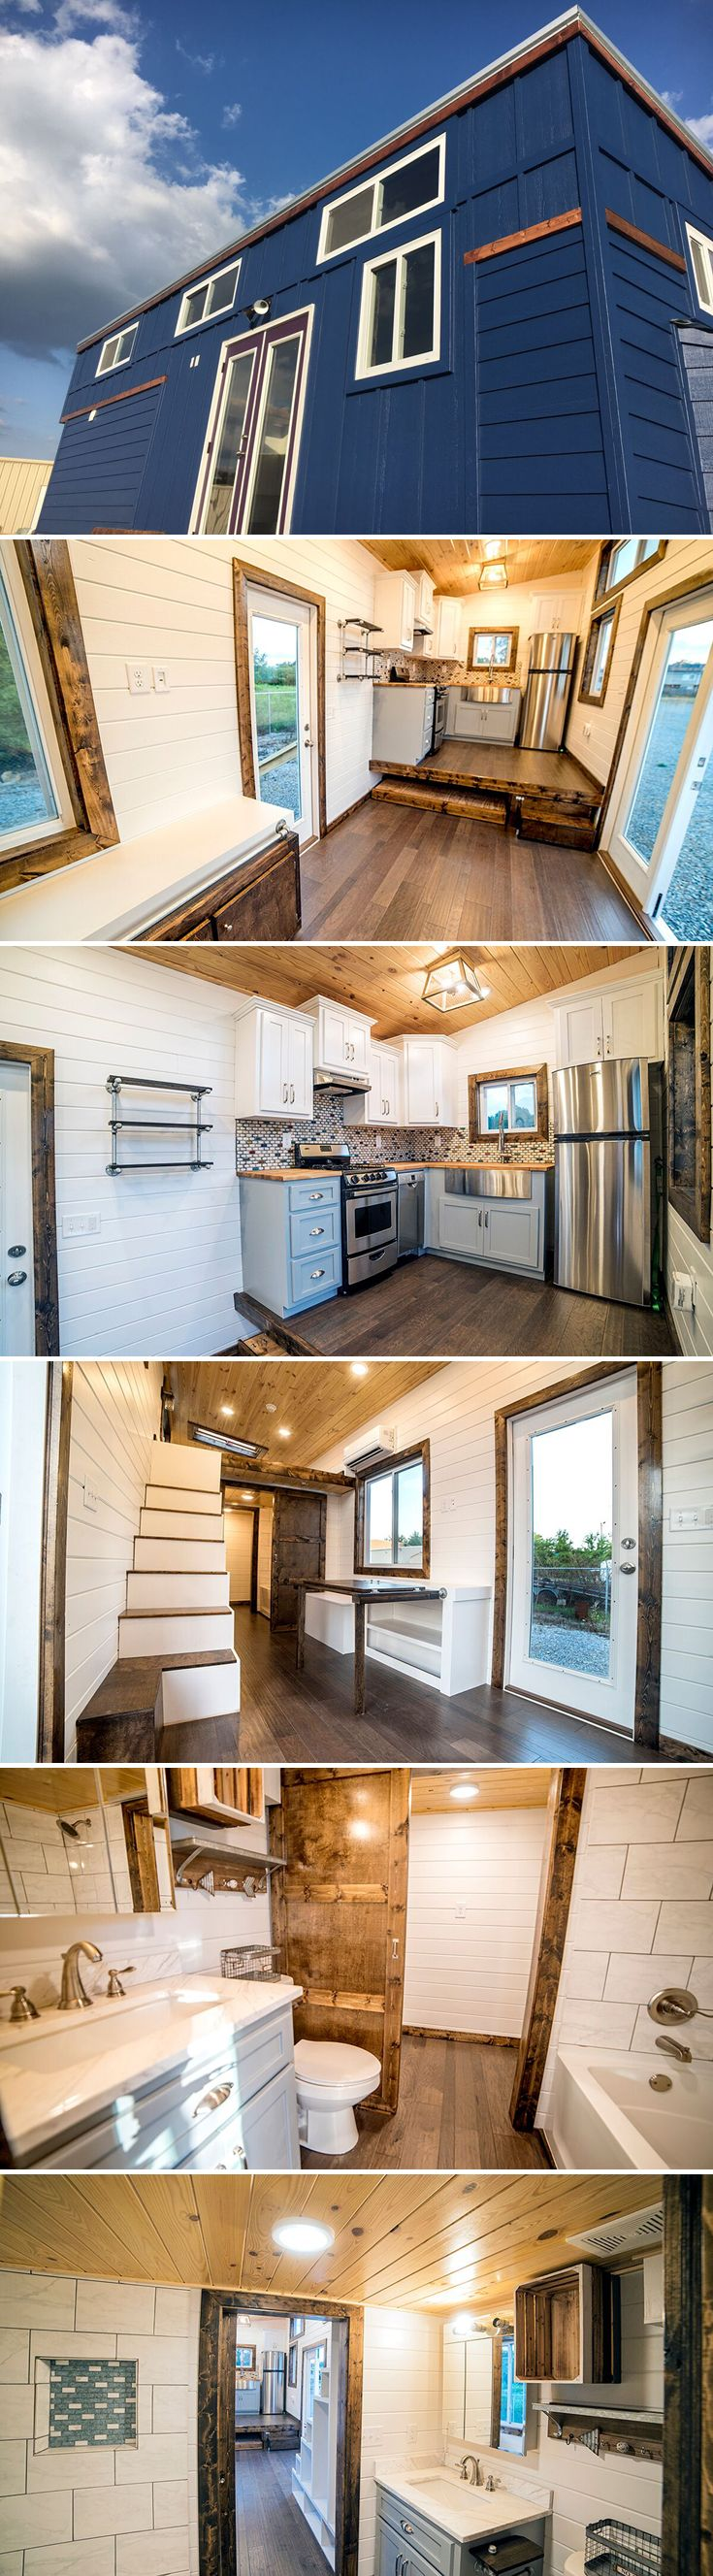 The 32' Blue Moon from Harmony Tiny Homes features a queen size trundle platform that pulls out from under the elevated kitchen floor.